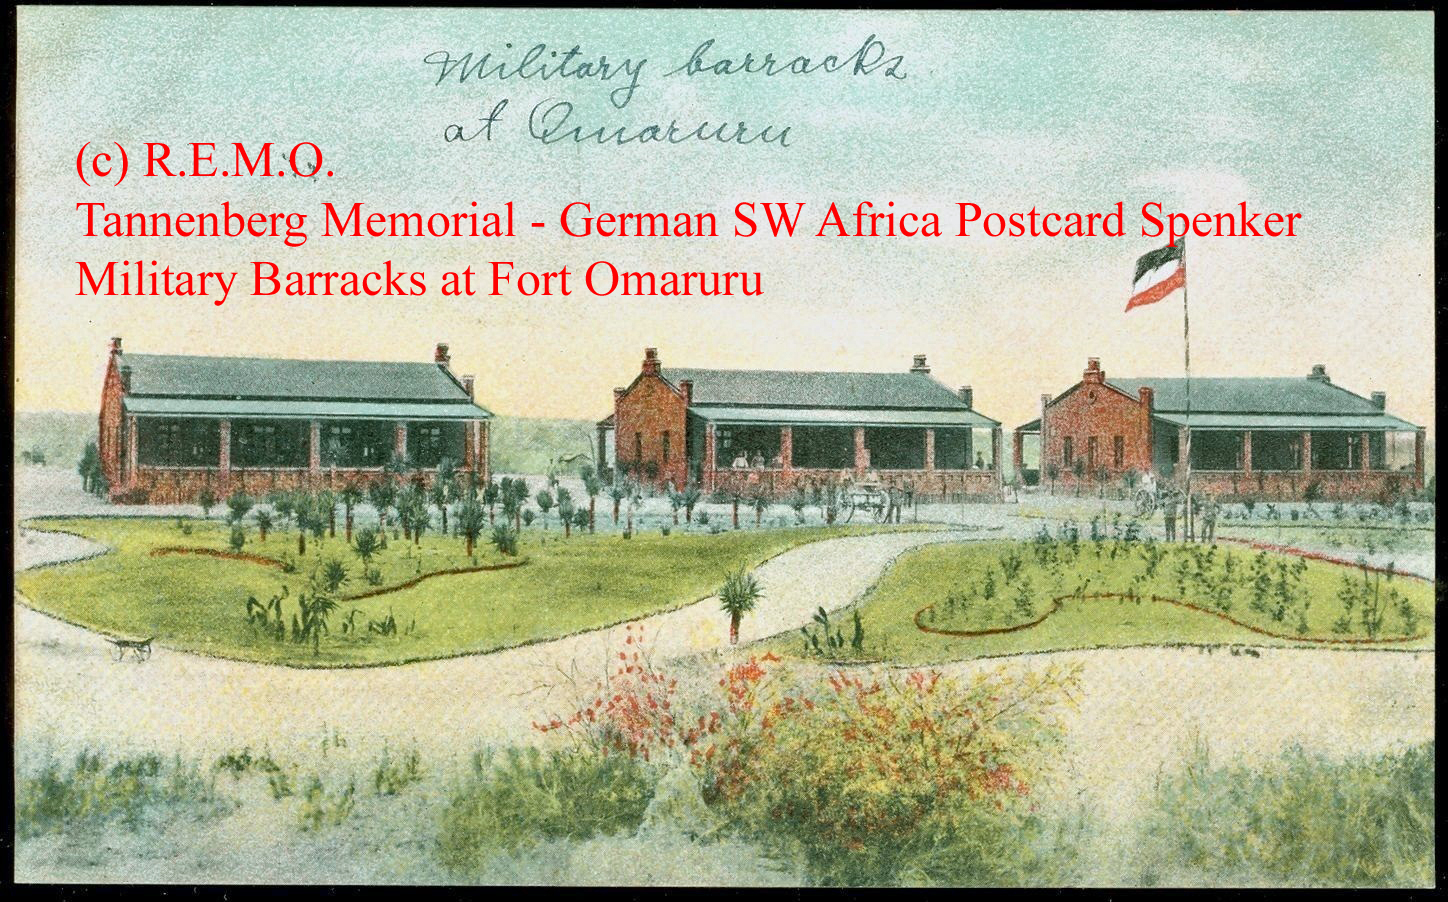 German SW Africa Postcard Spenker Military Barracks at Fort Omaruru